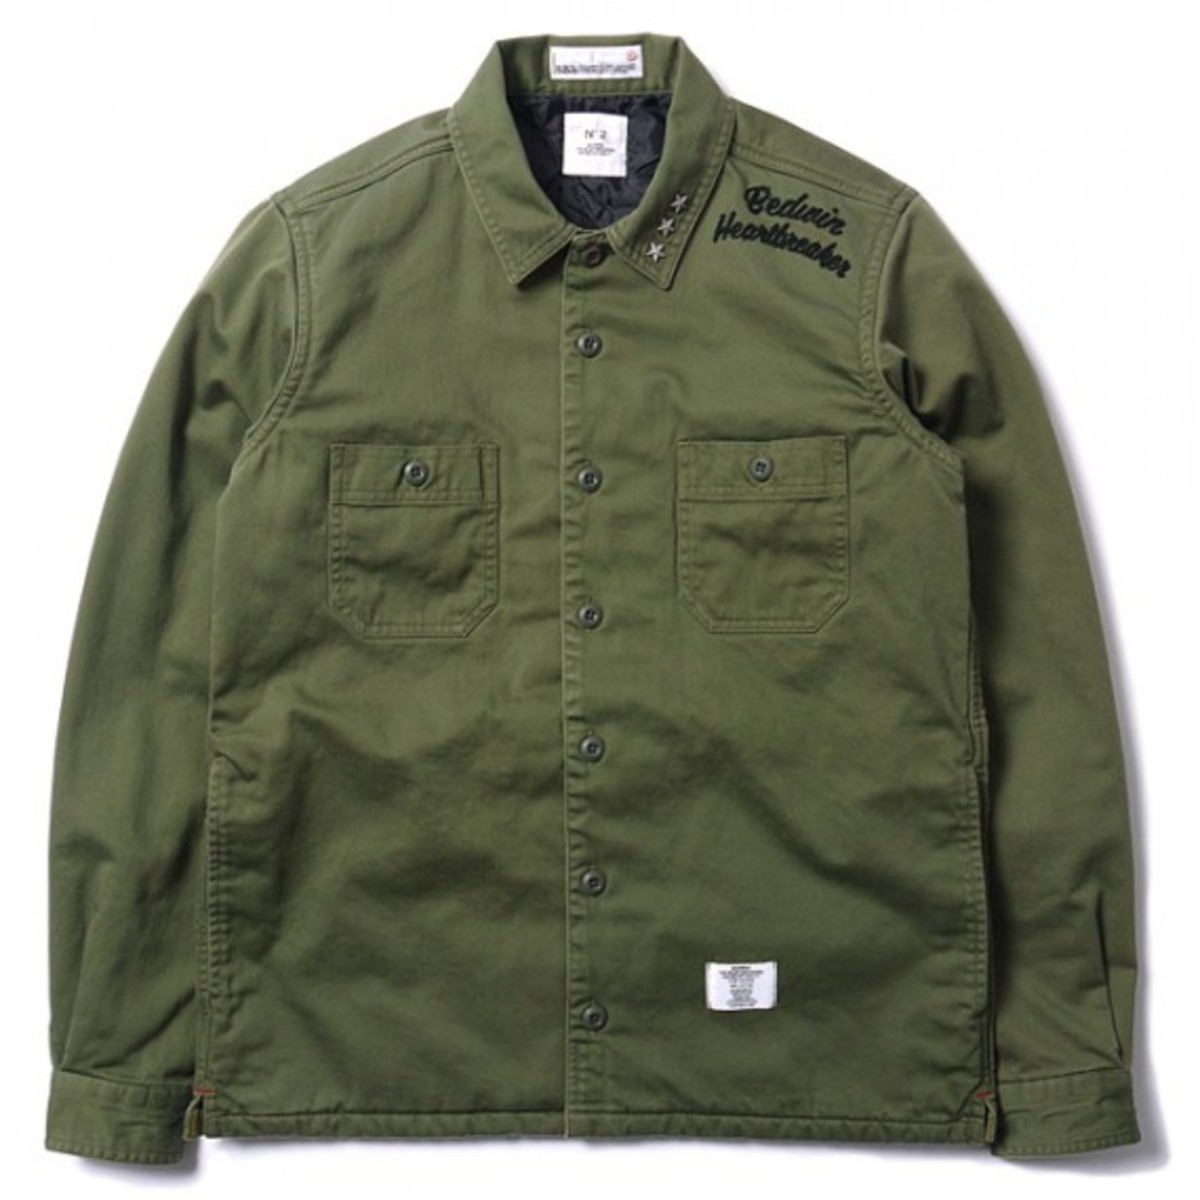 bedwin-haven-richards-quilted-military-cpo-shirt-10